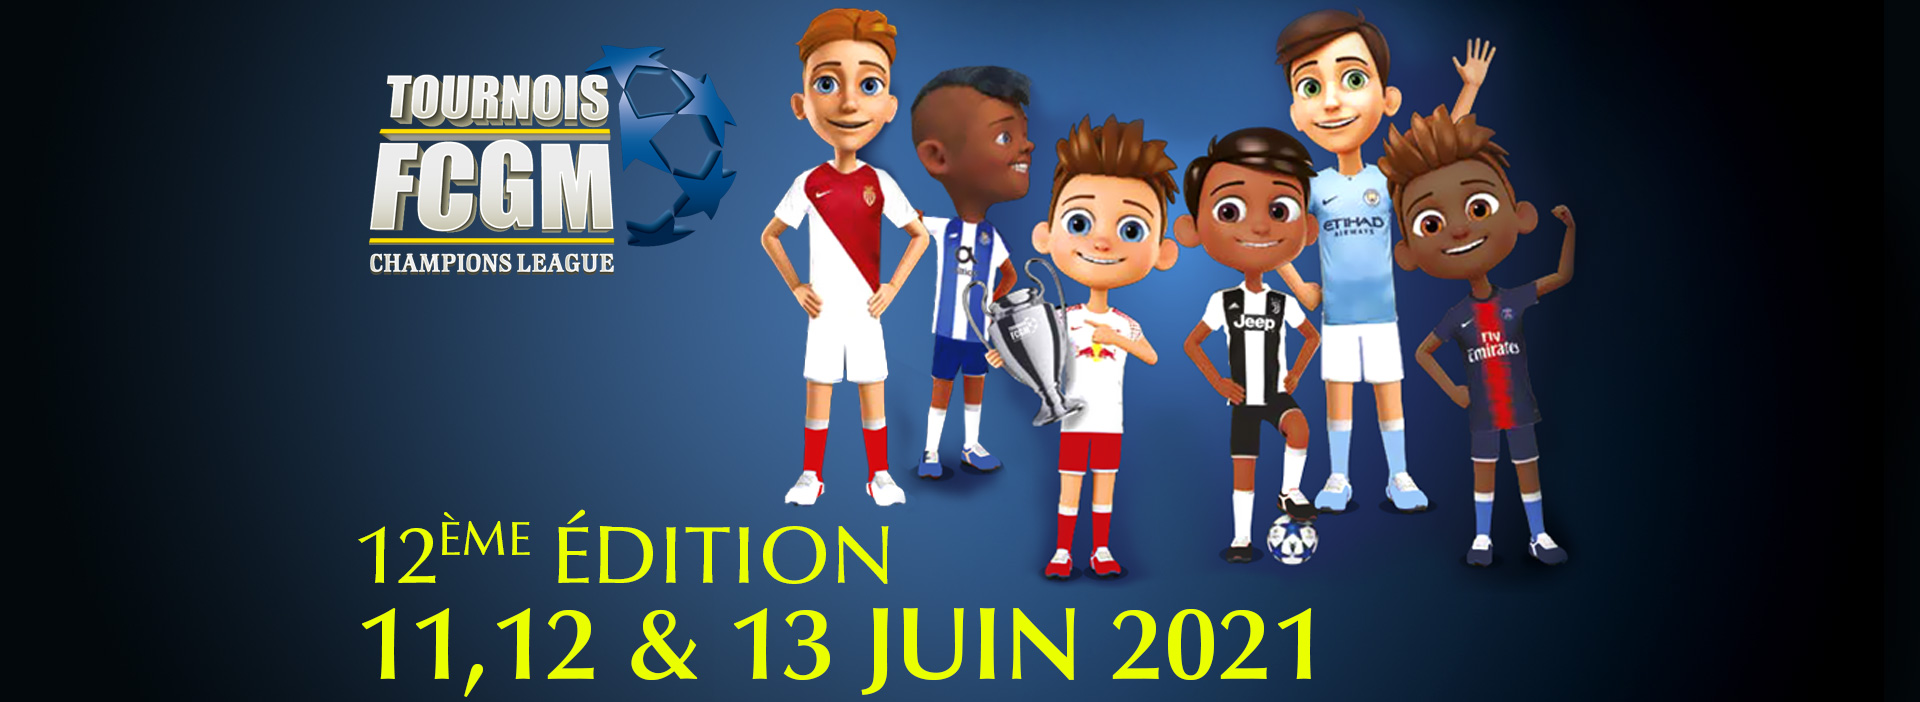 Tournoi FCGM champion league 2021